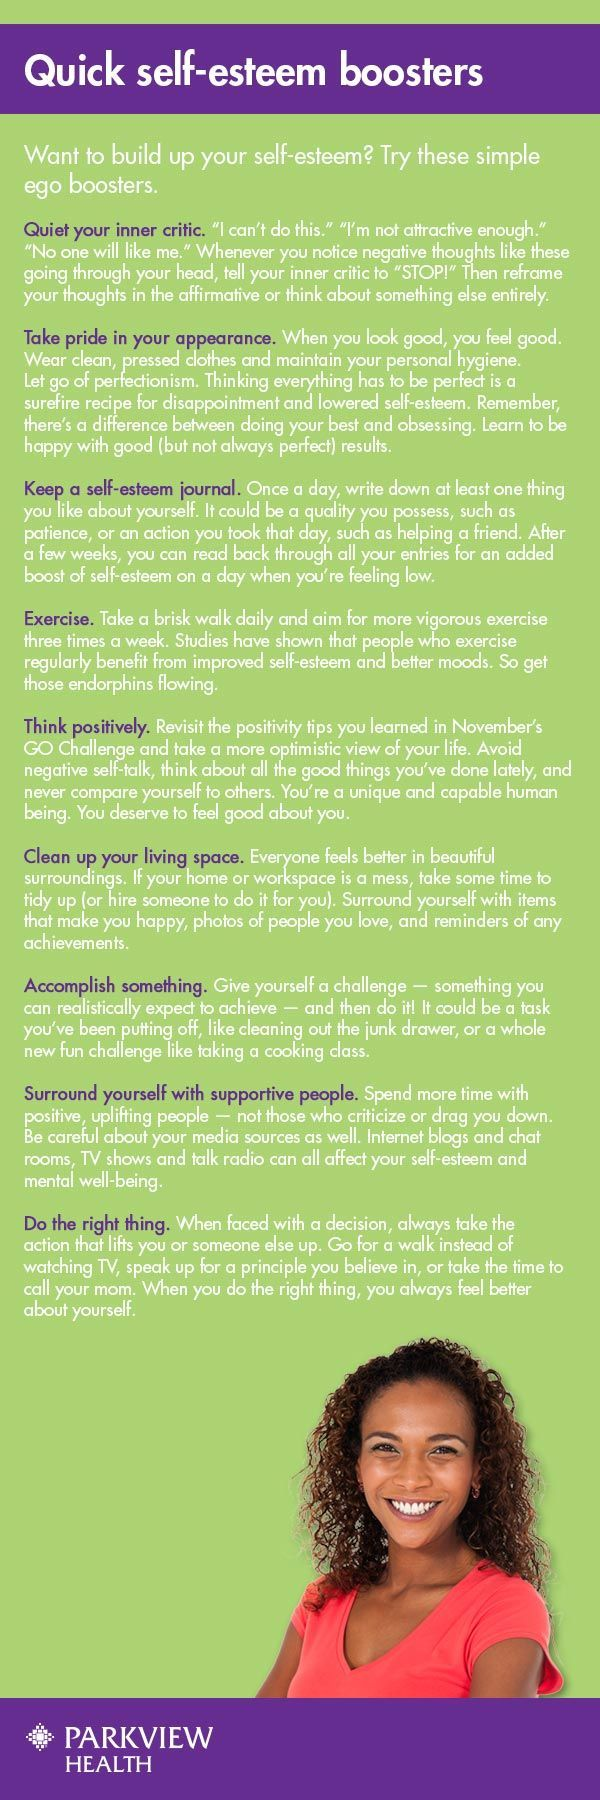 Tips for improving self-esteem and quick self-esteem boosters. | via @ParkviewHealth: